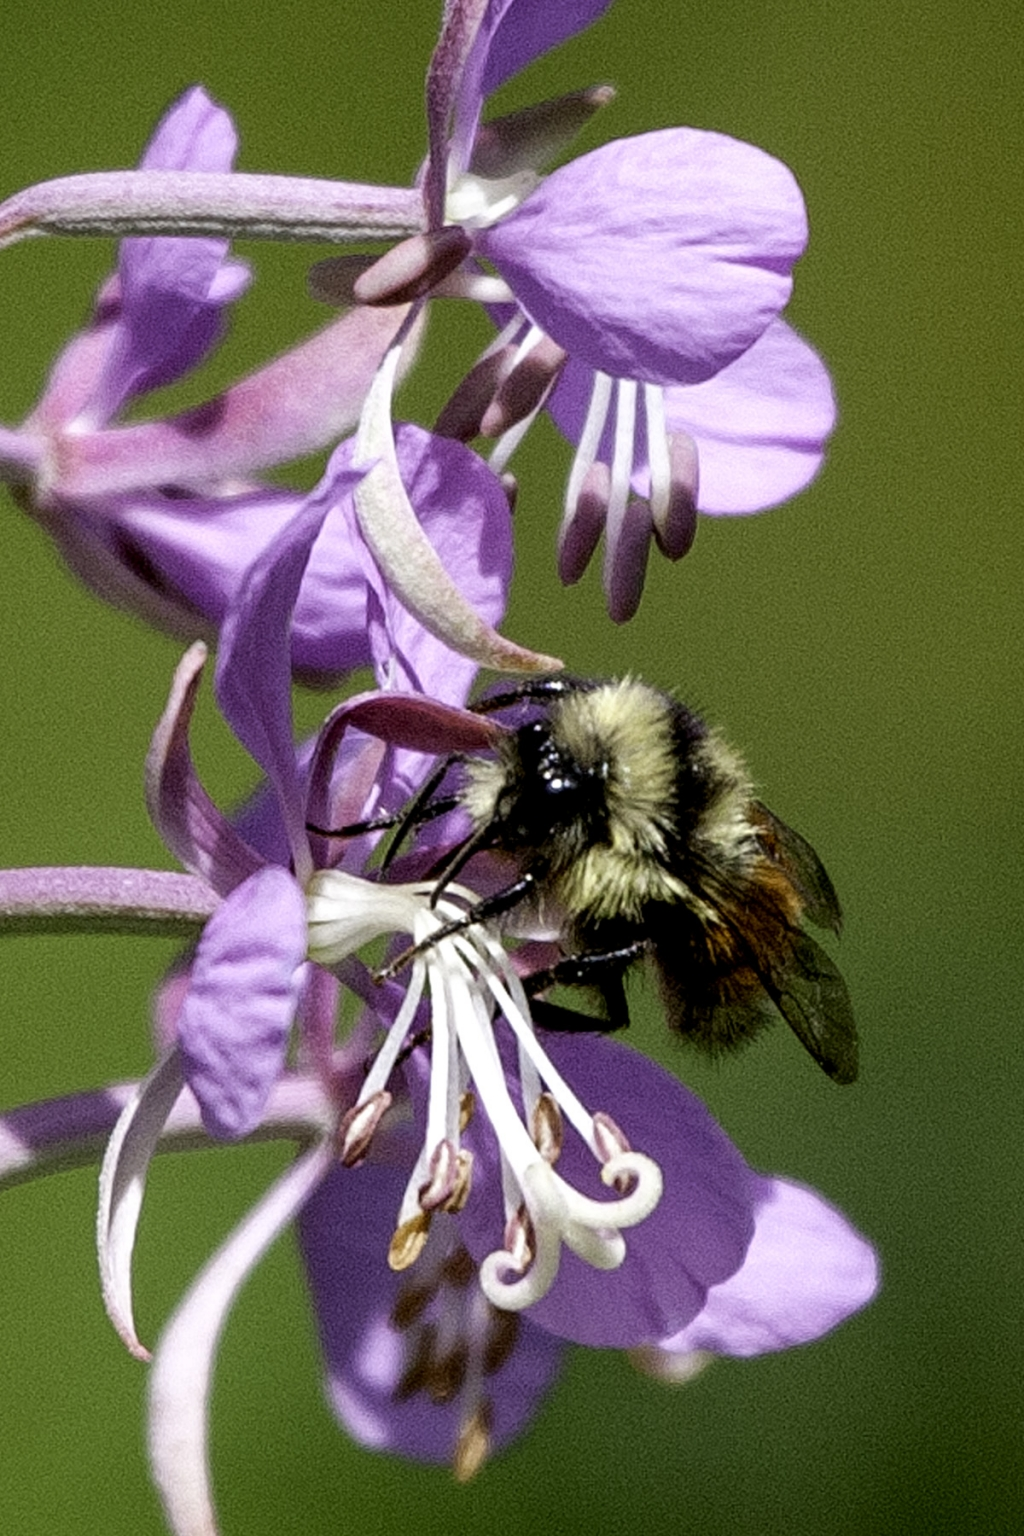 Macro Photography and Bees